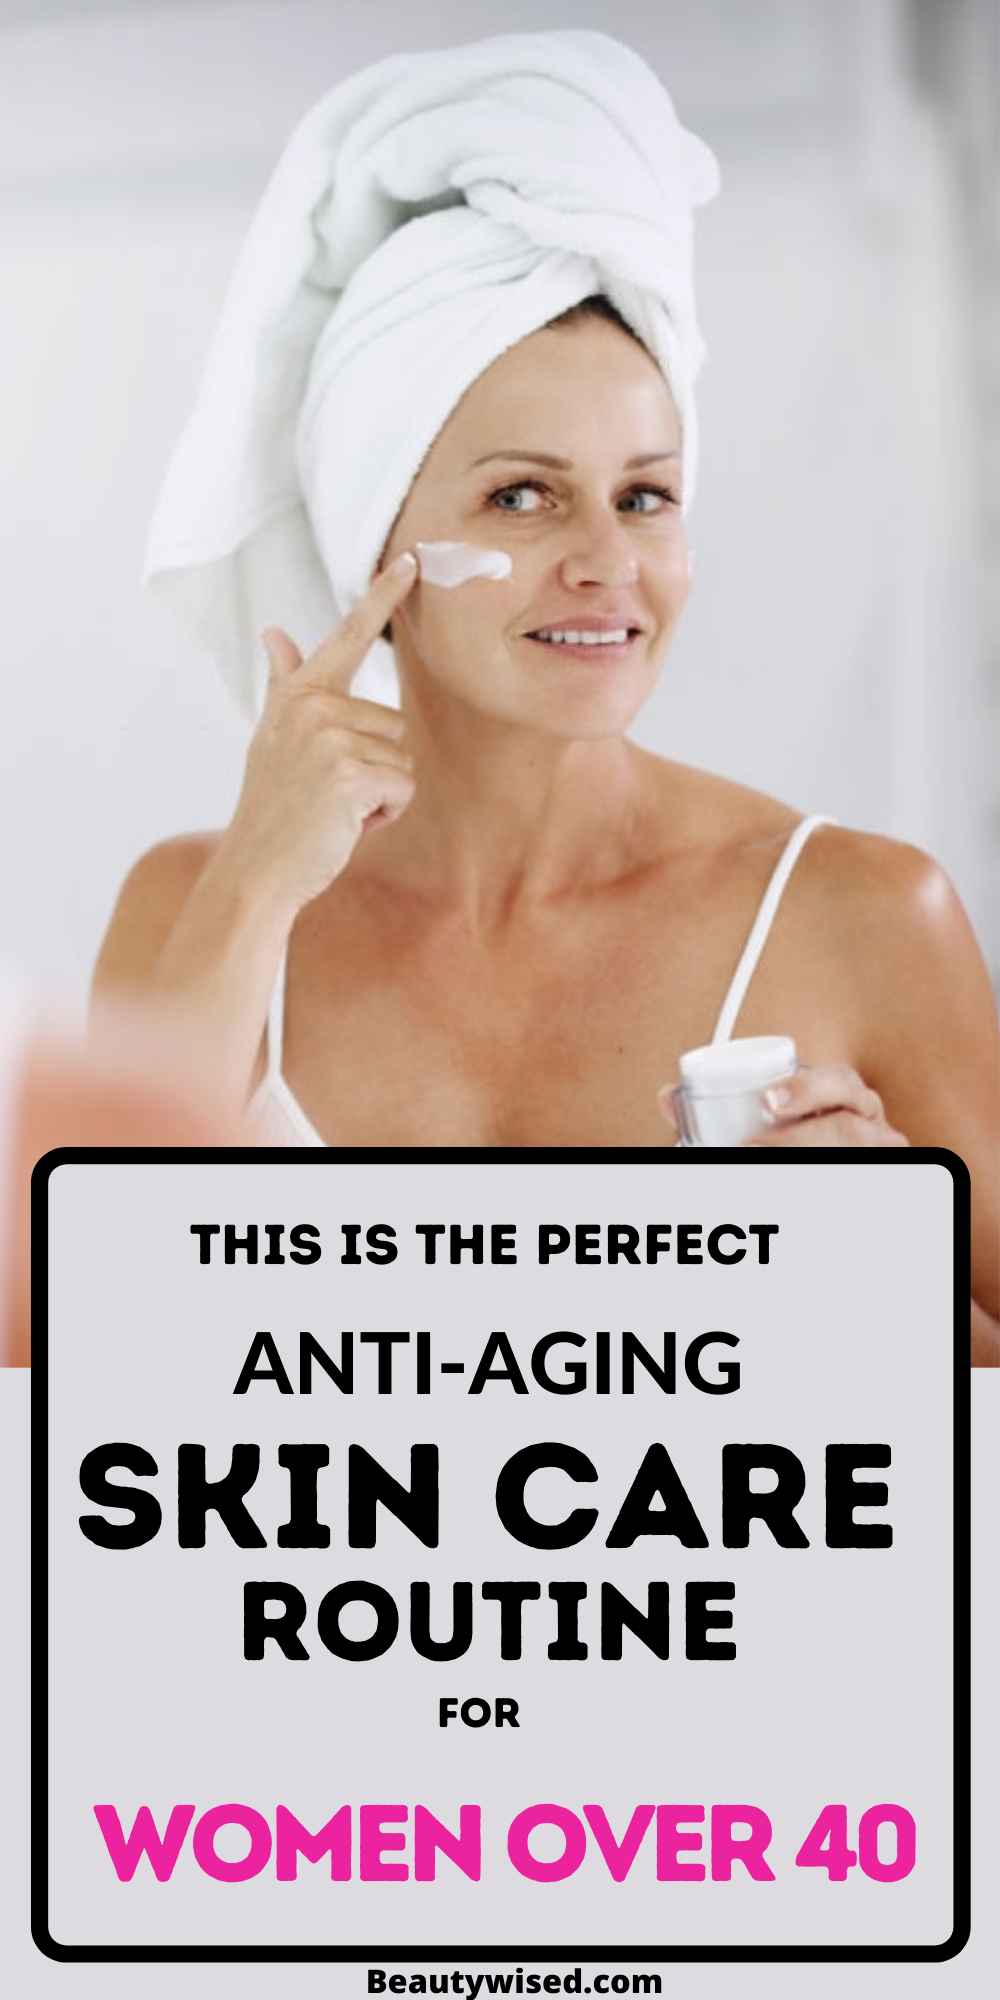 11 Proven Anti Aging Skincare Steps To Take Care Of Your 40s Skin And Make It Look Younger In 2020 Skin Care Steps Skin Care Routine Best Skin Care Routine